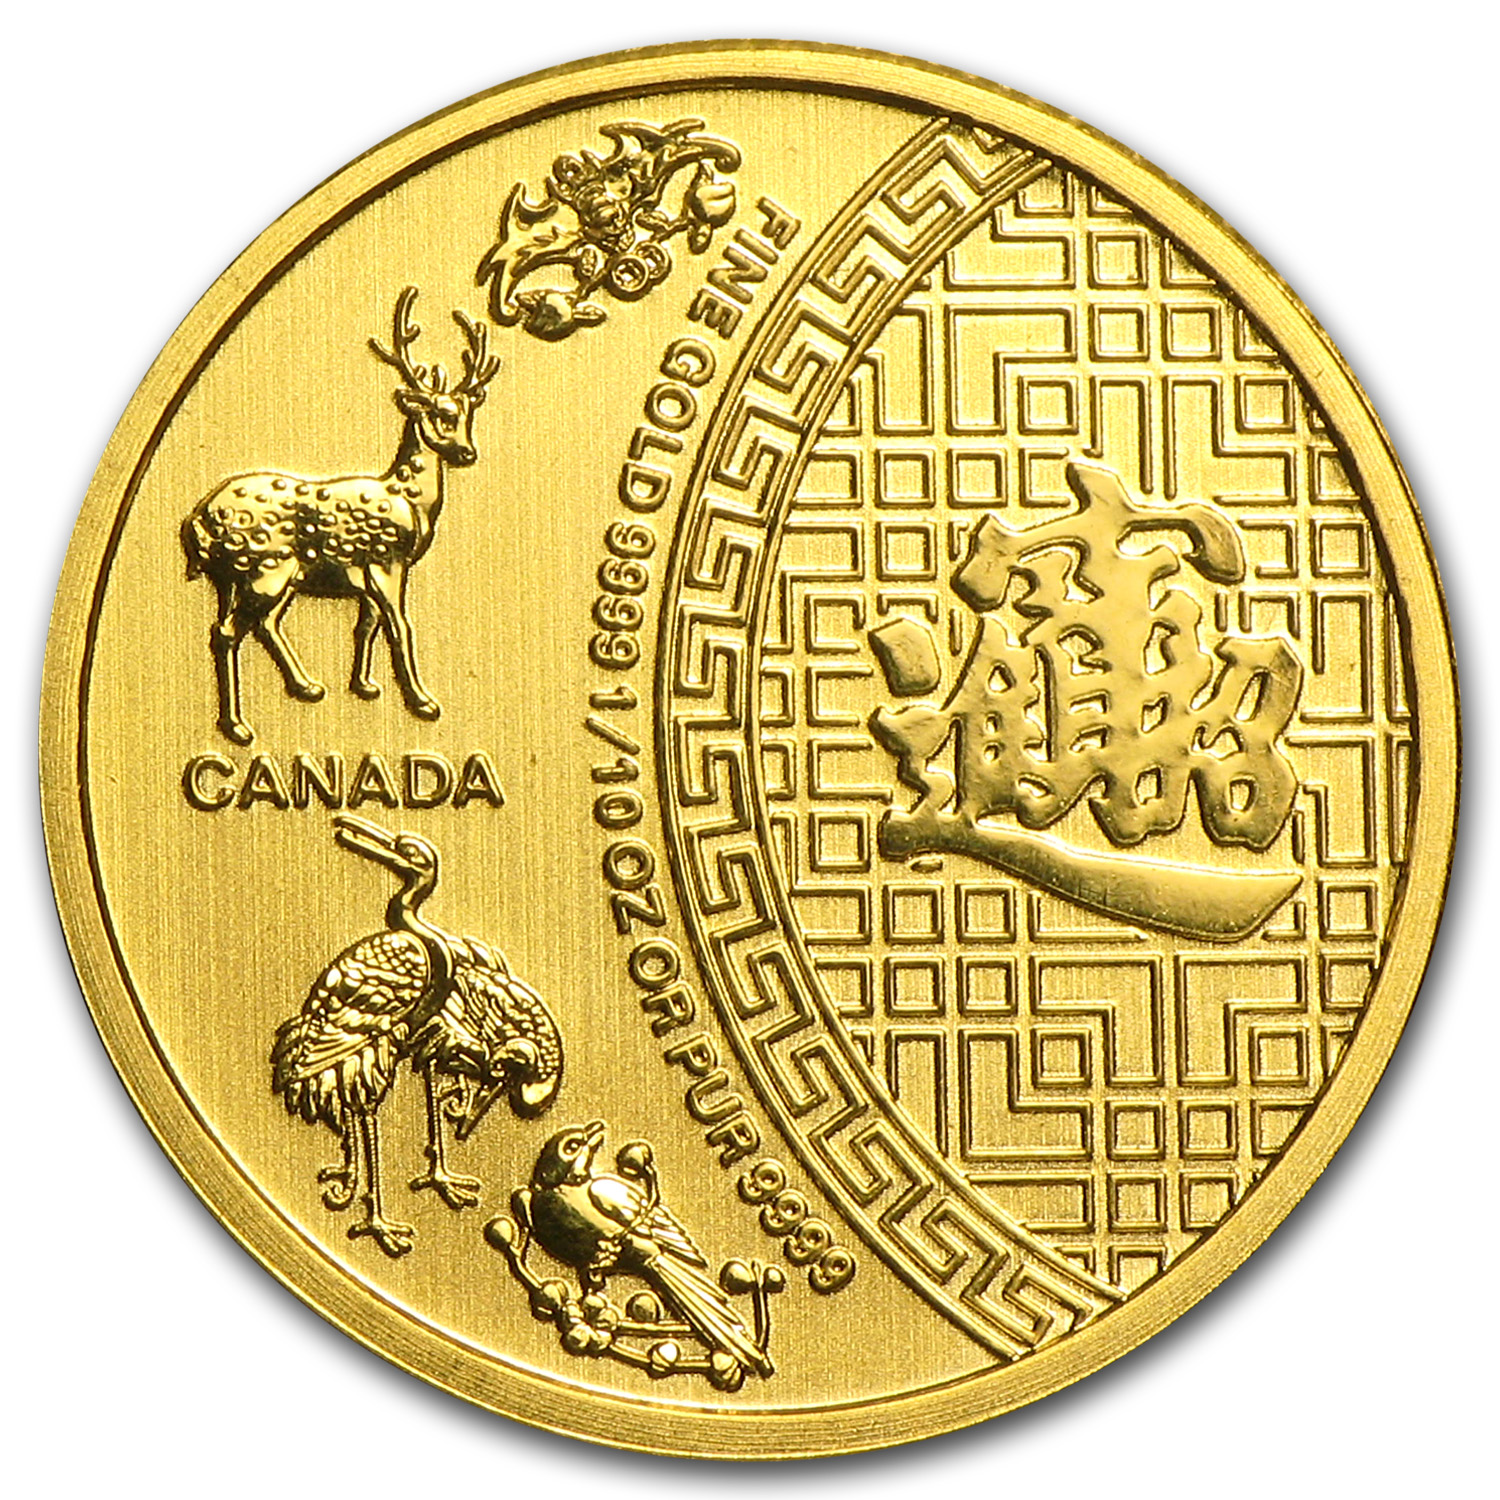 2014 1/10 oz Gold Canadian Coin - Five Blessings (Abrasions)